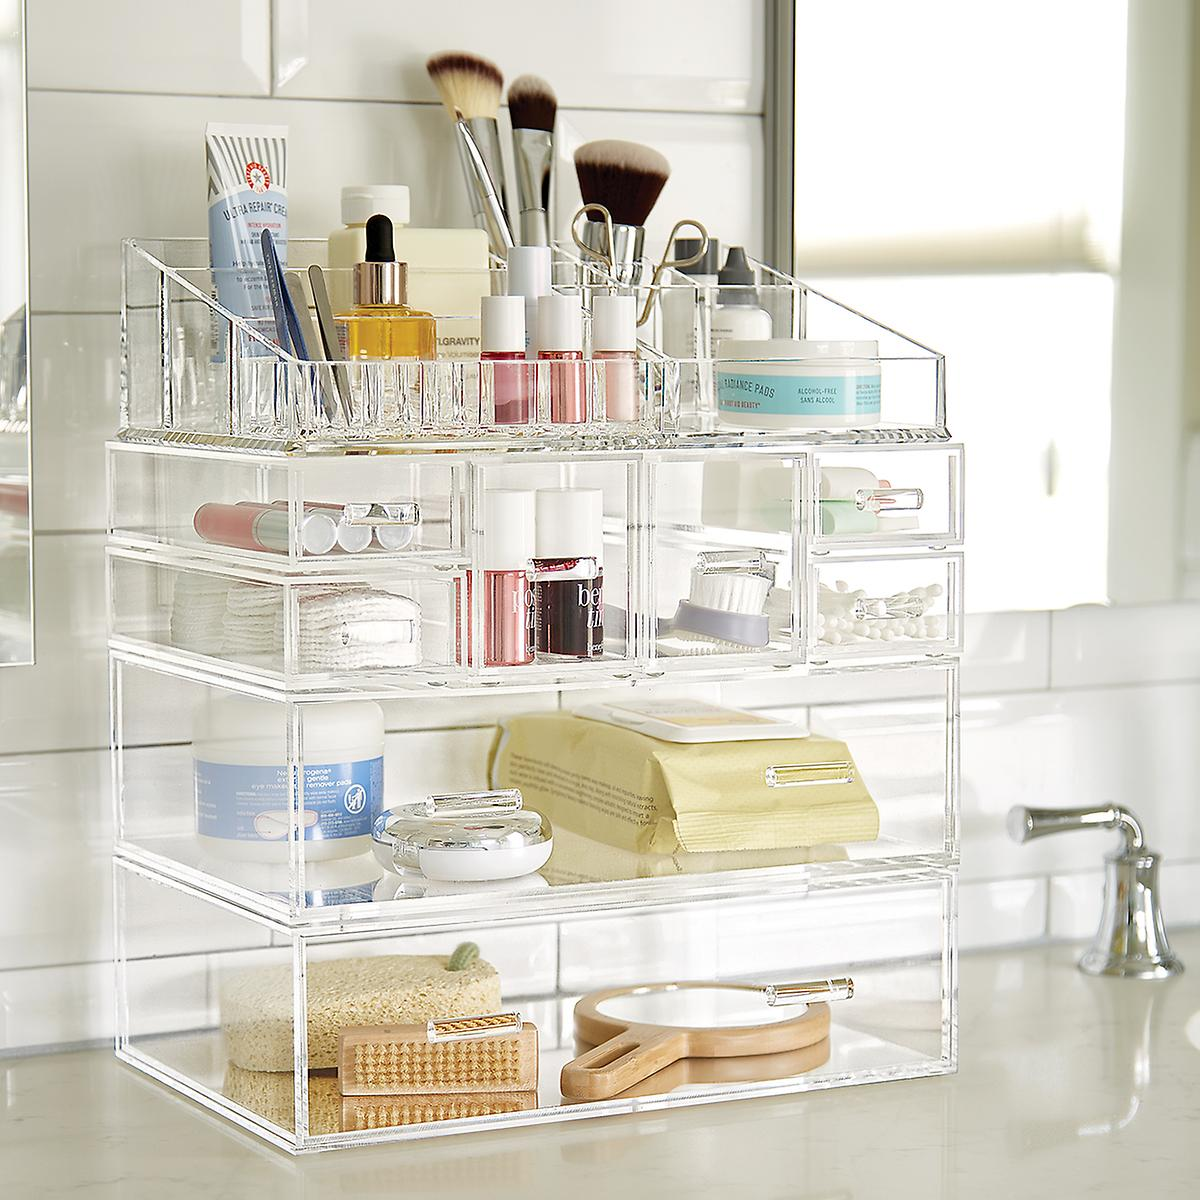 Design Makeup Tray Organizer luxe acrylic modular makeup storage the container store organizer